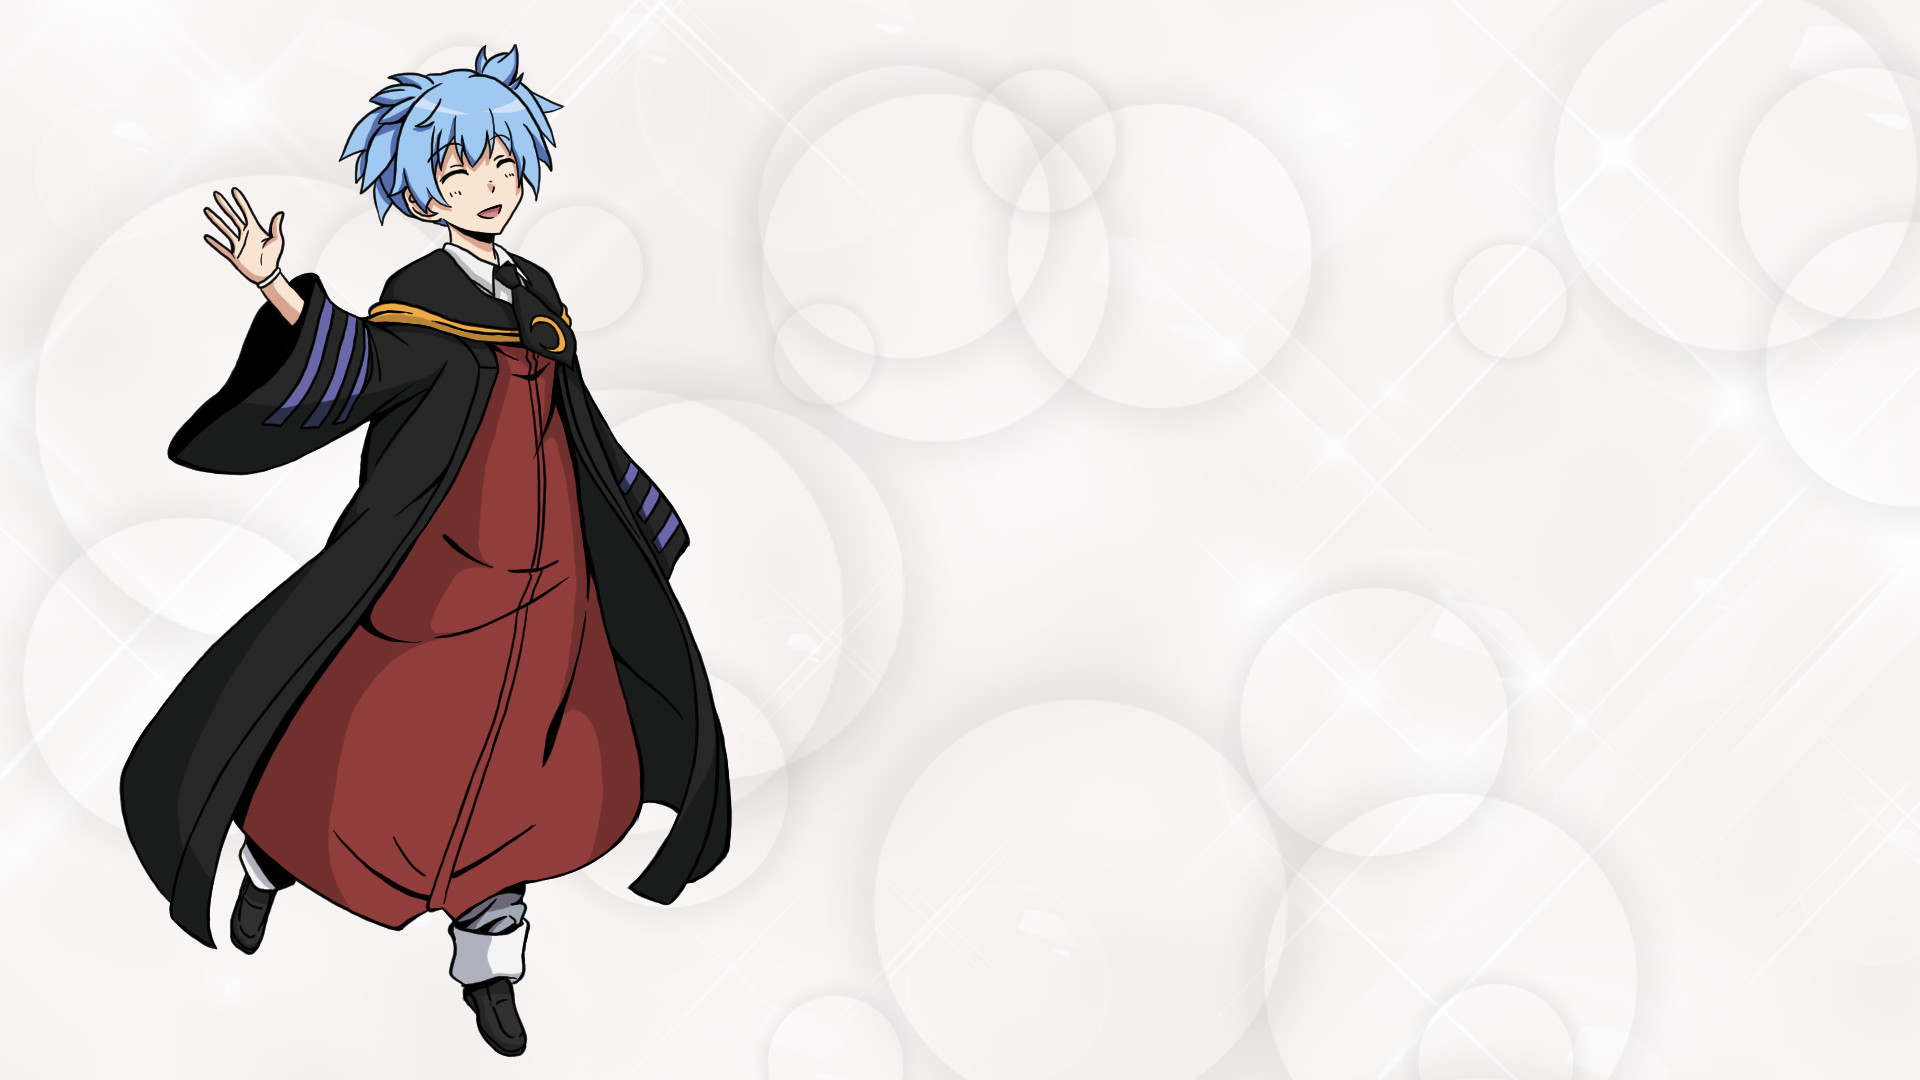 1920x1080 ... Nagisa (Assassination Classroom) Wallpaper by harundoener